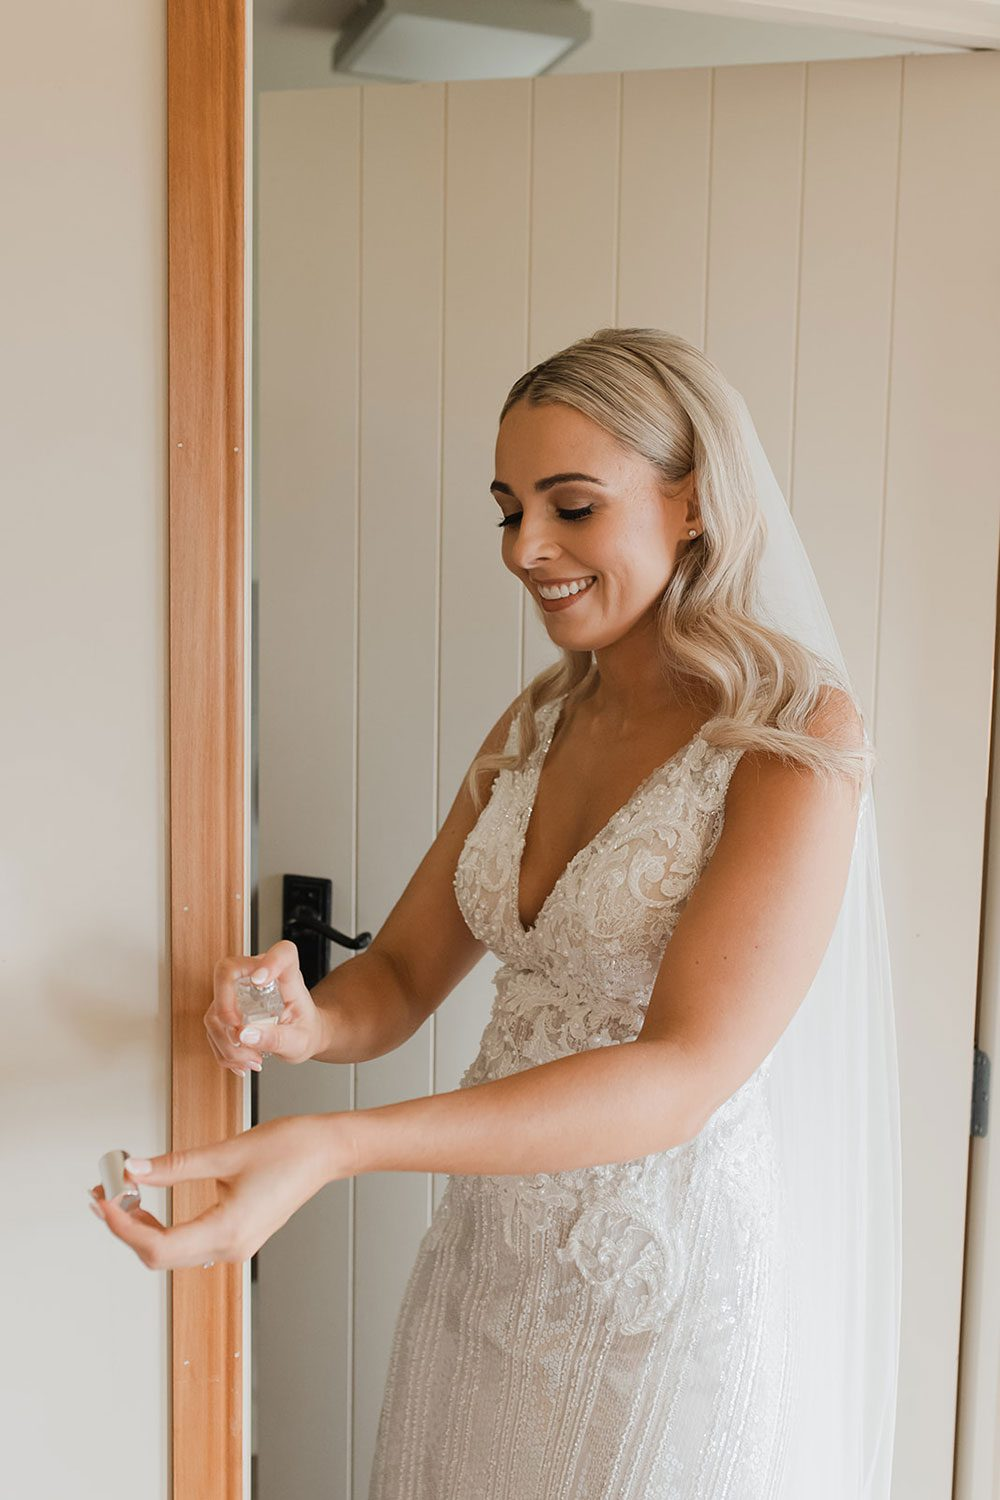 Bride wearing bespoke fitted V-neck gown in beaded lace with front split and sheer overlay by Vinka bridal boutique NZ - putting on perfume -neck gown in beaded lace with front split and sheer beaded overlay - putting on perfume